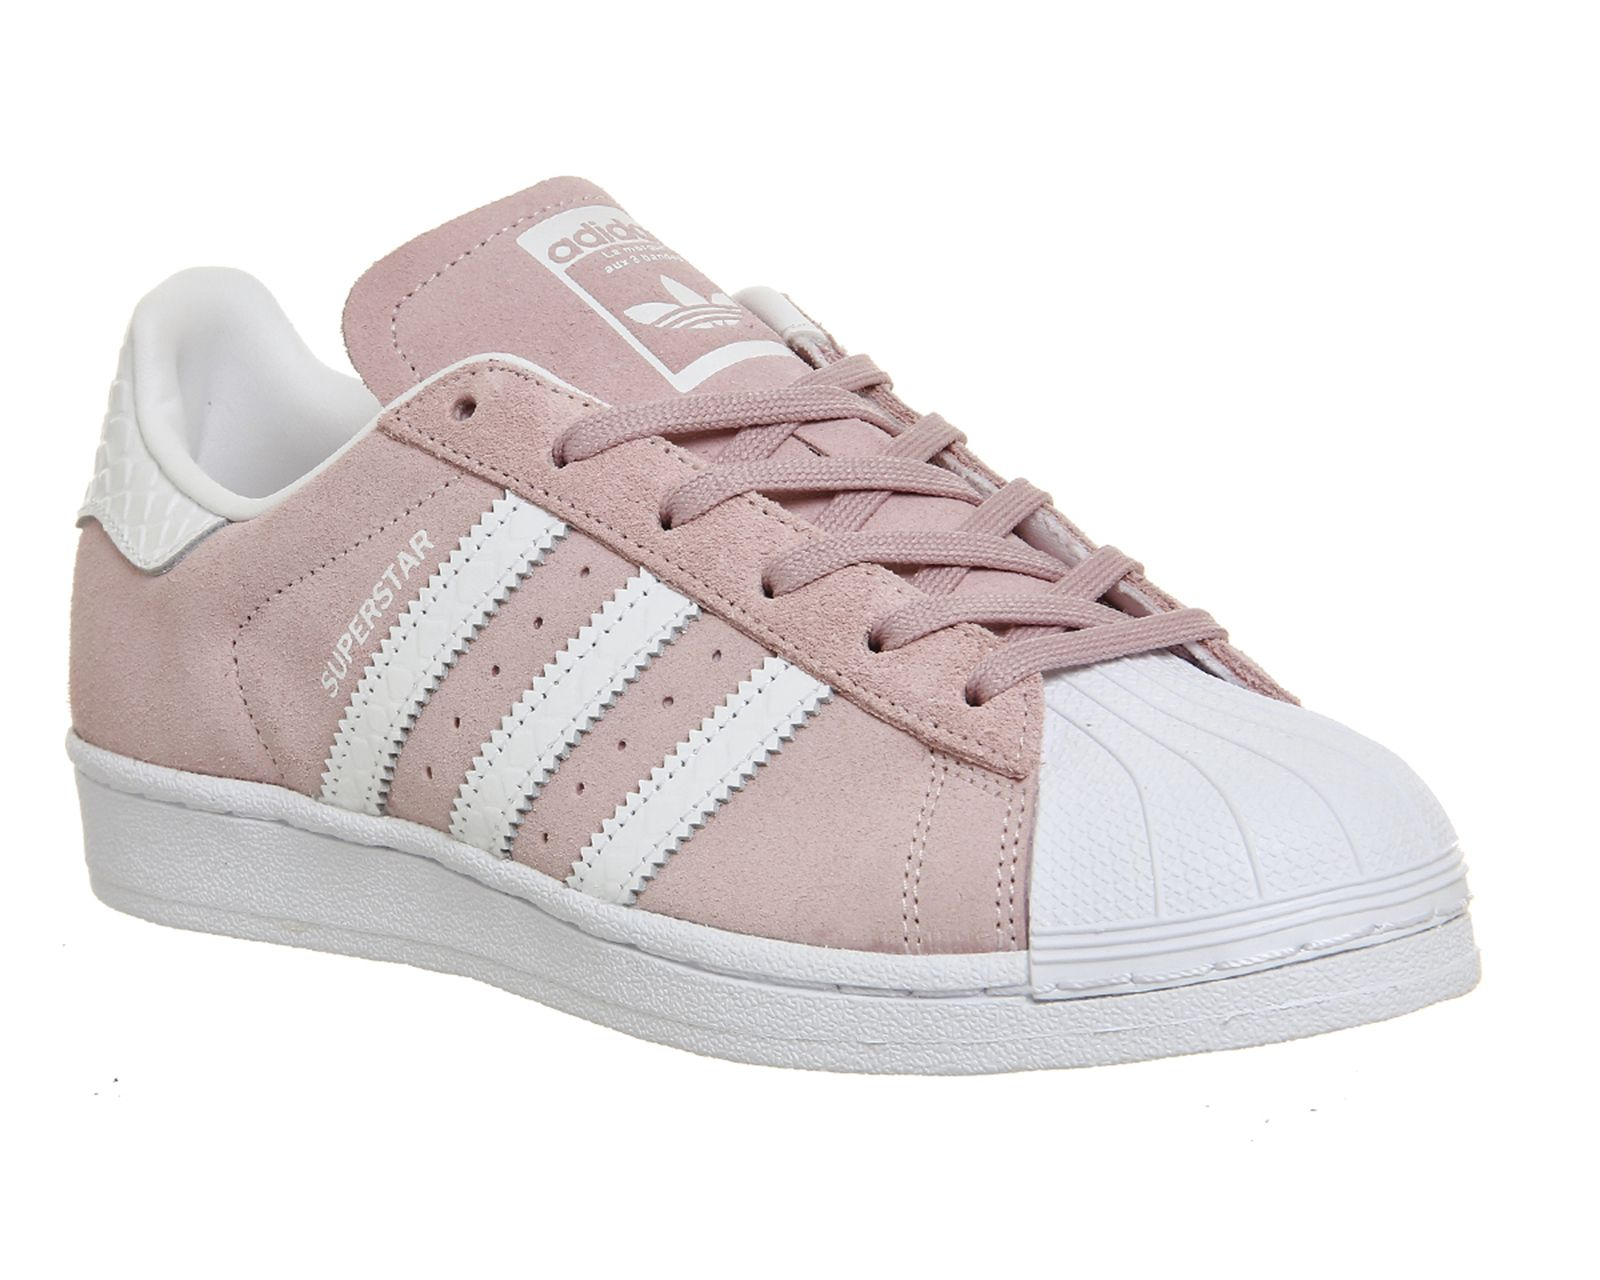 Buy Pink White Snake Adidas Superstar 1 from OFFICE.co.uk.